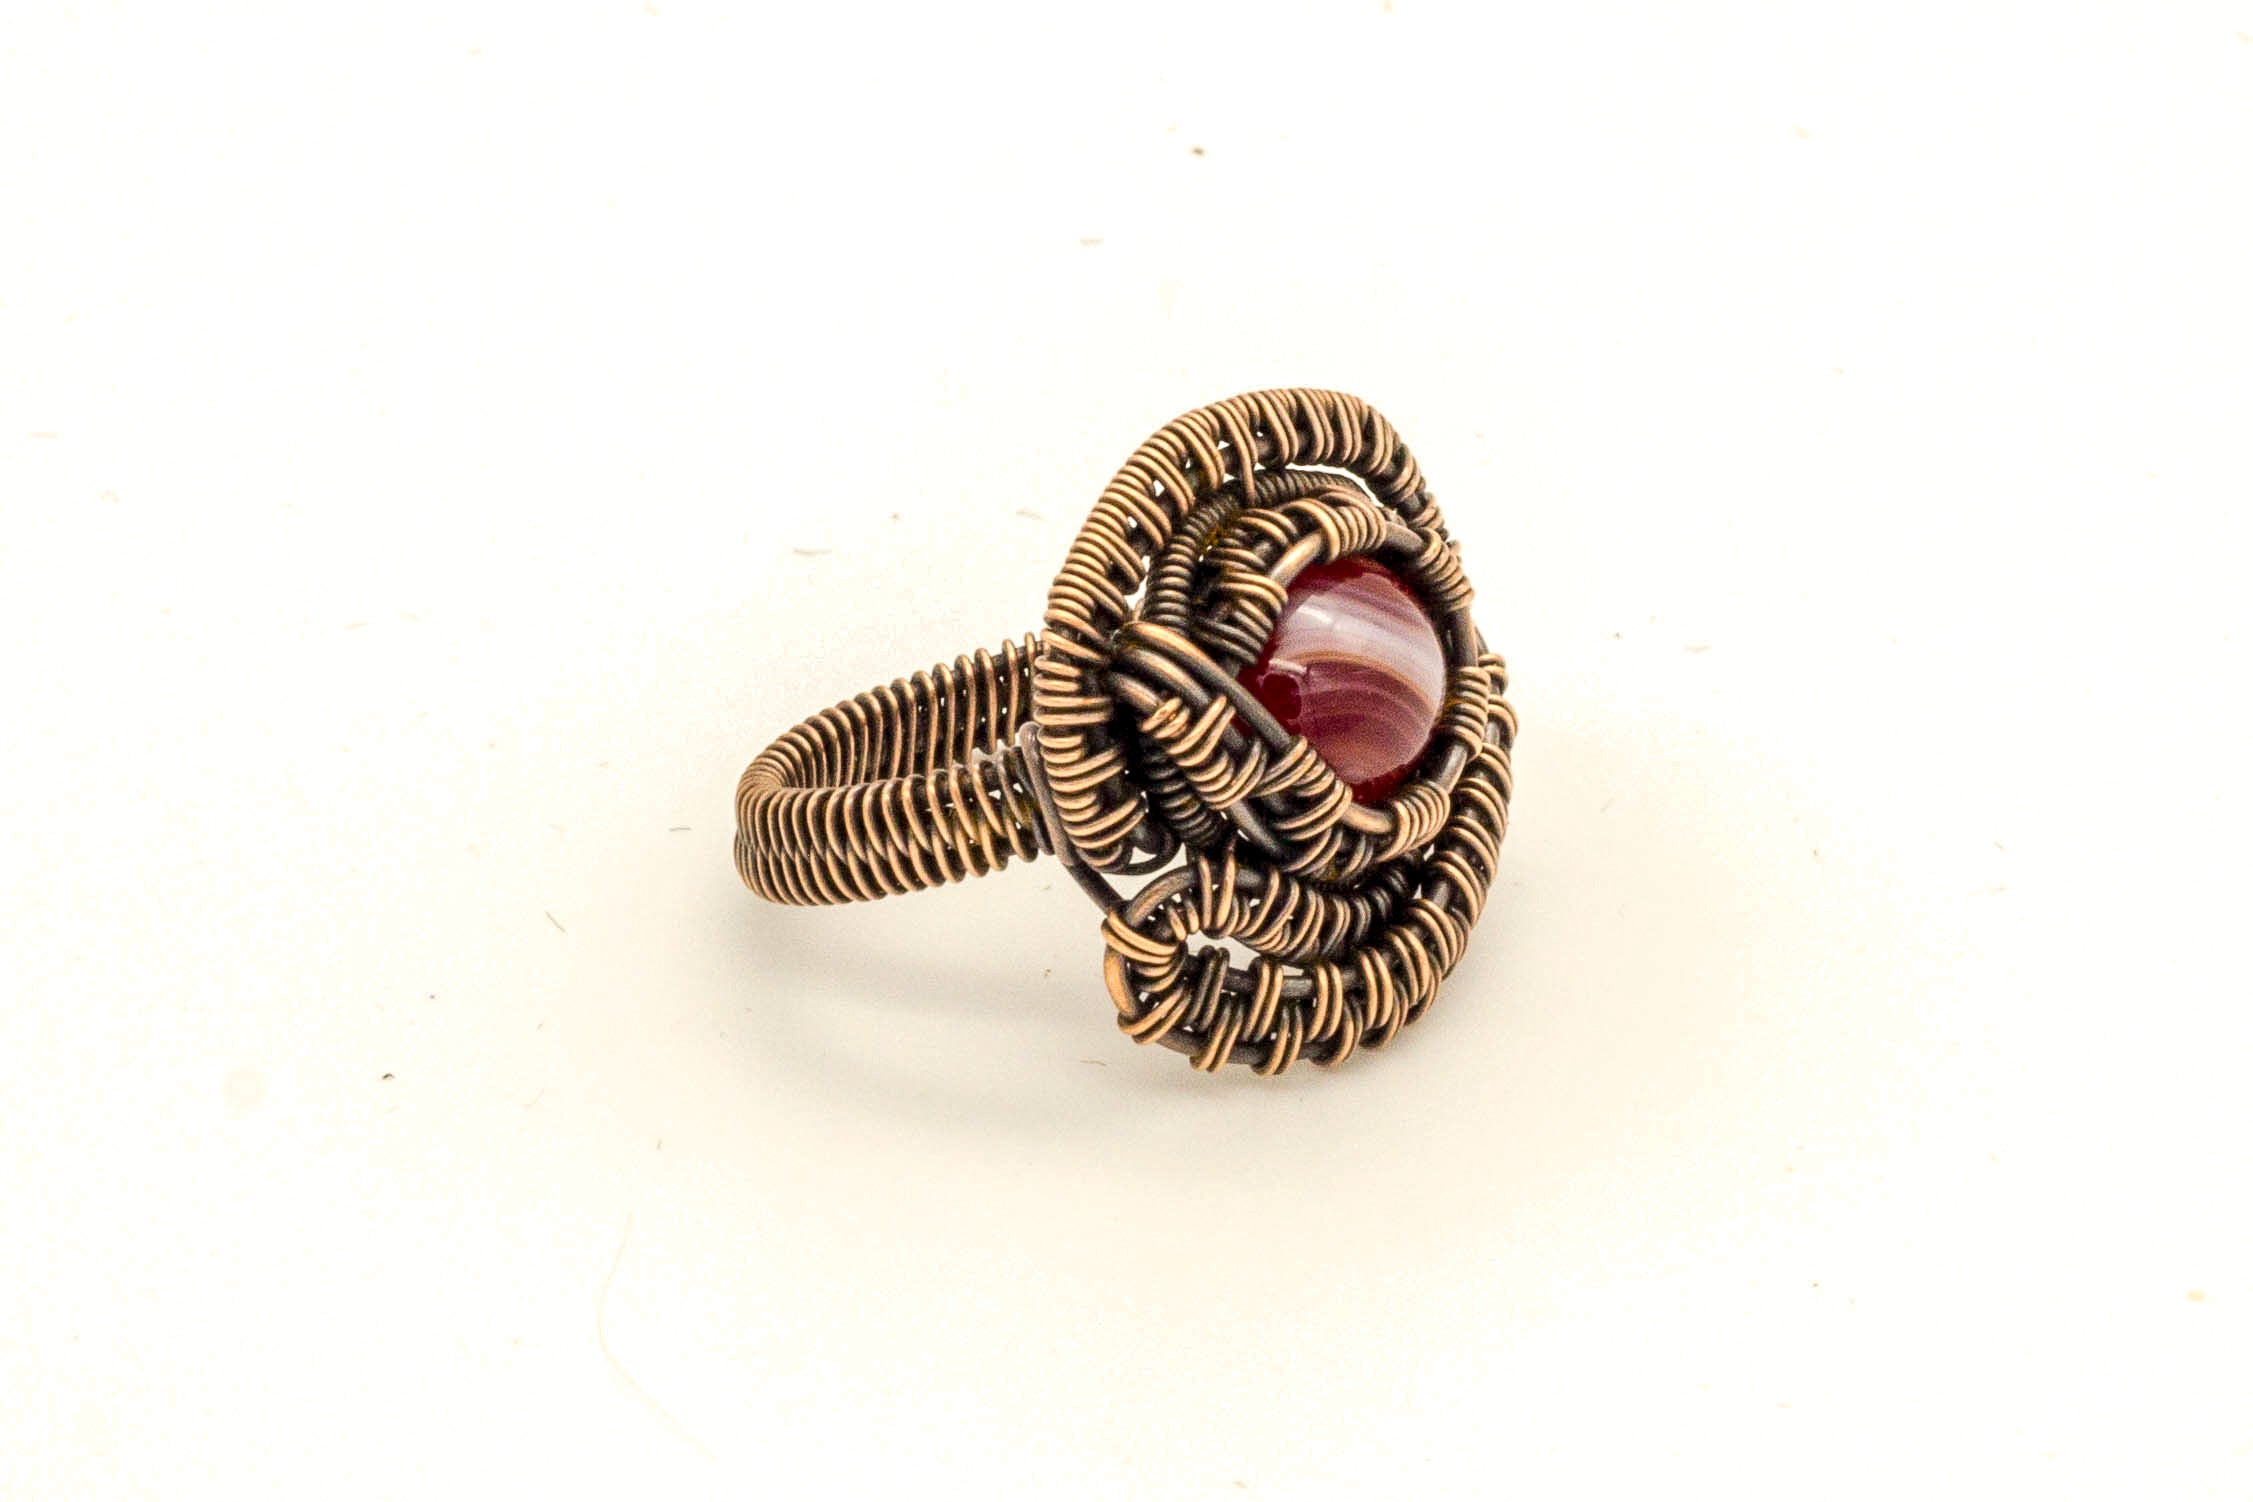 copper-wire-wrapped-ring-red-white-fused-glass-nymph-in-the-woods-jewelry